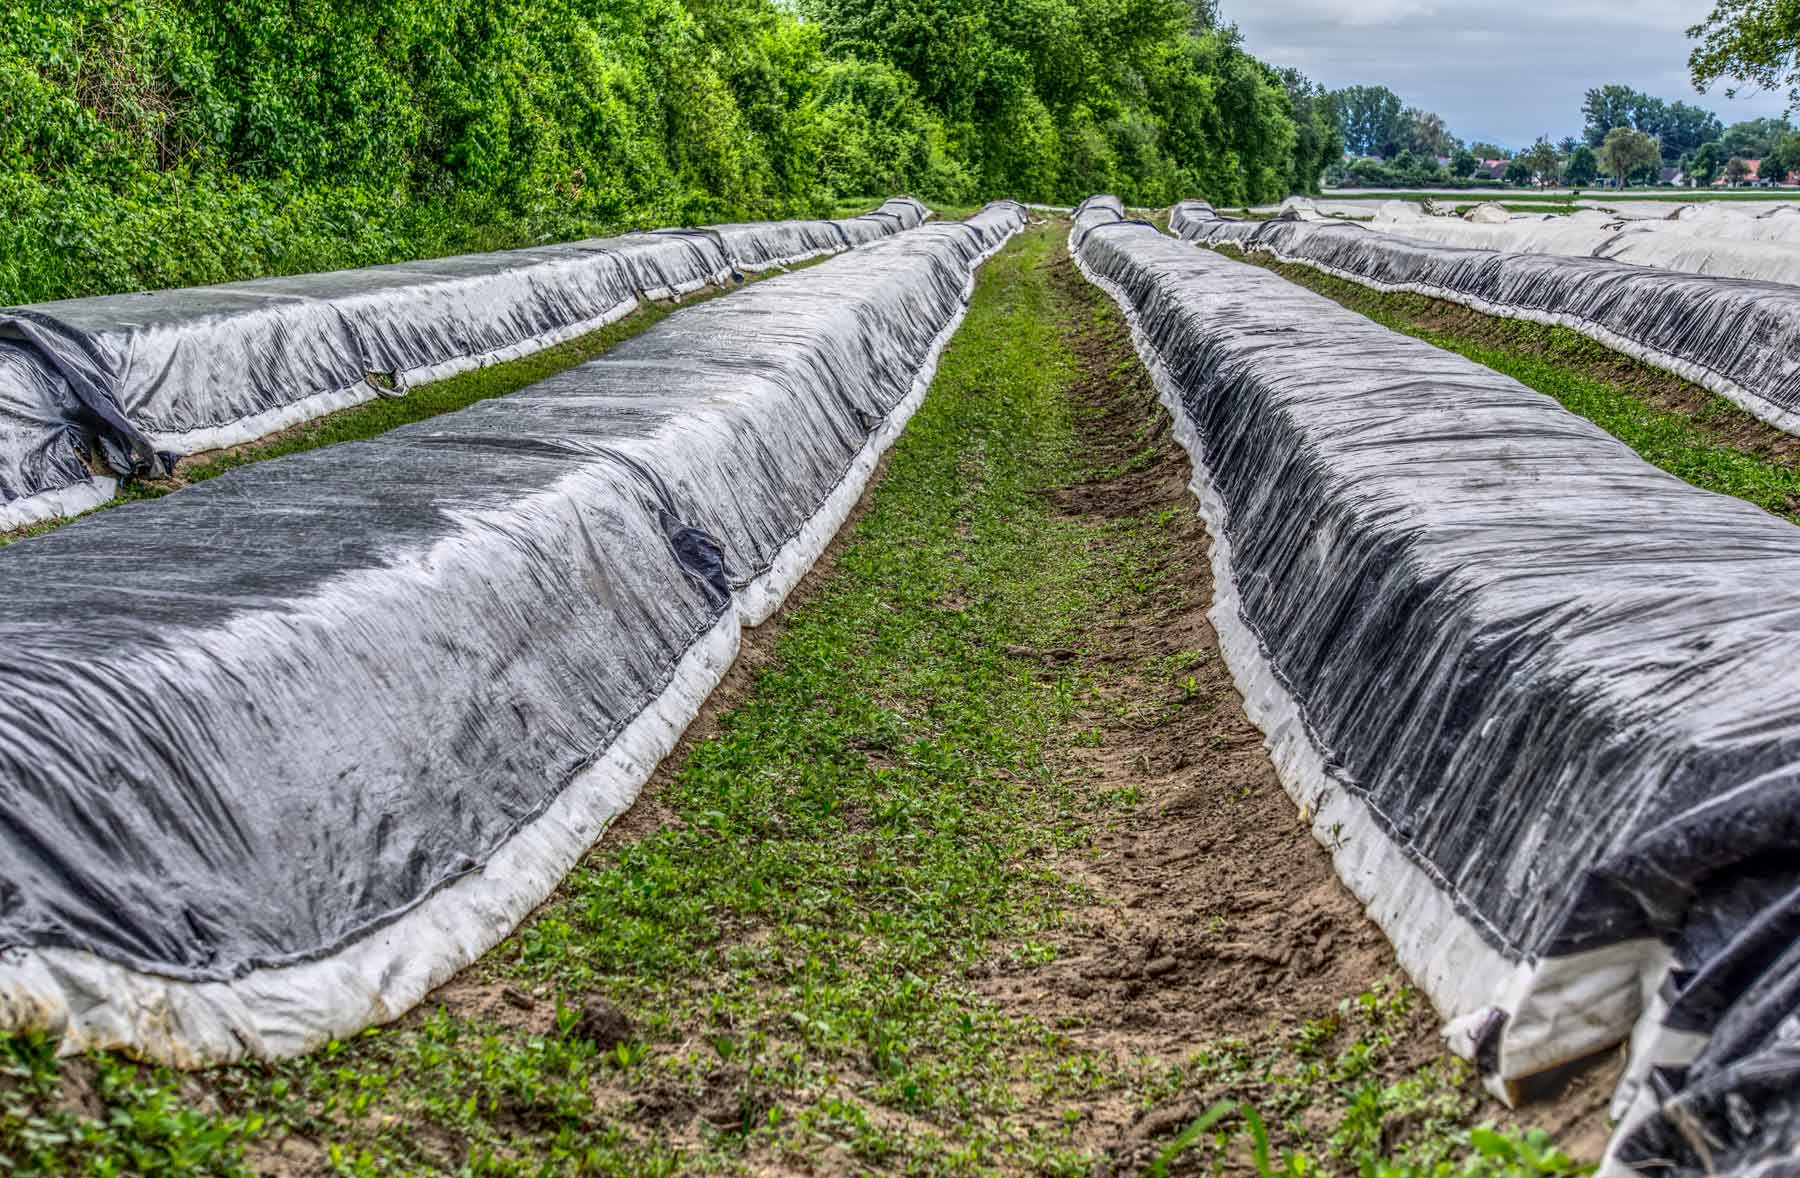 Asparagus being blanched in the field